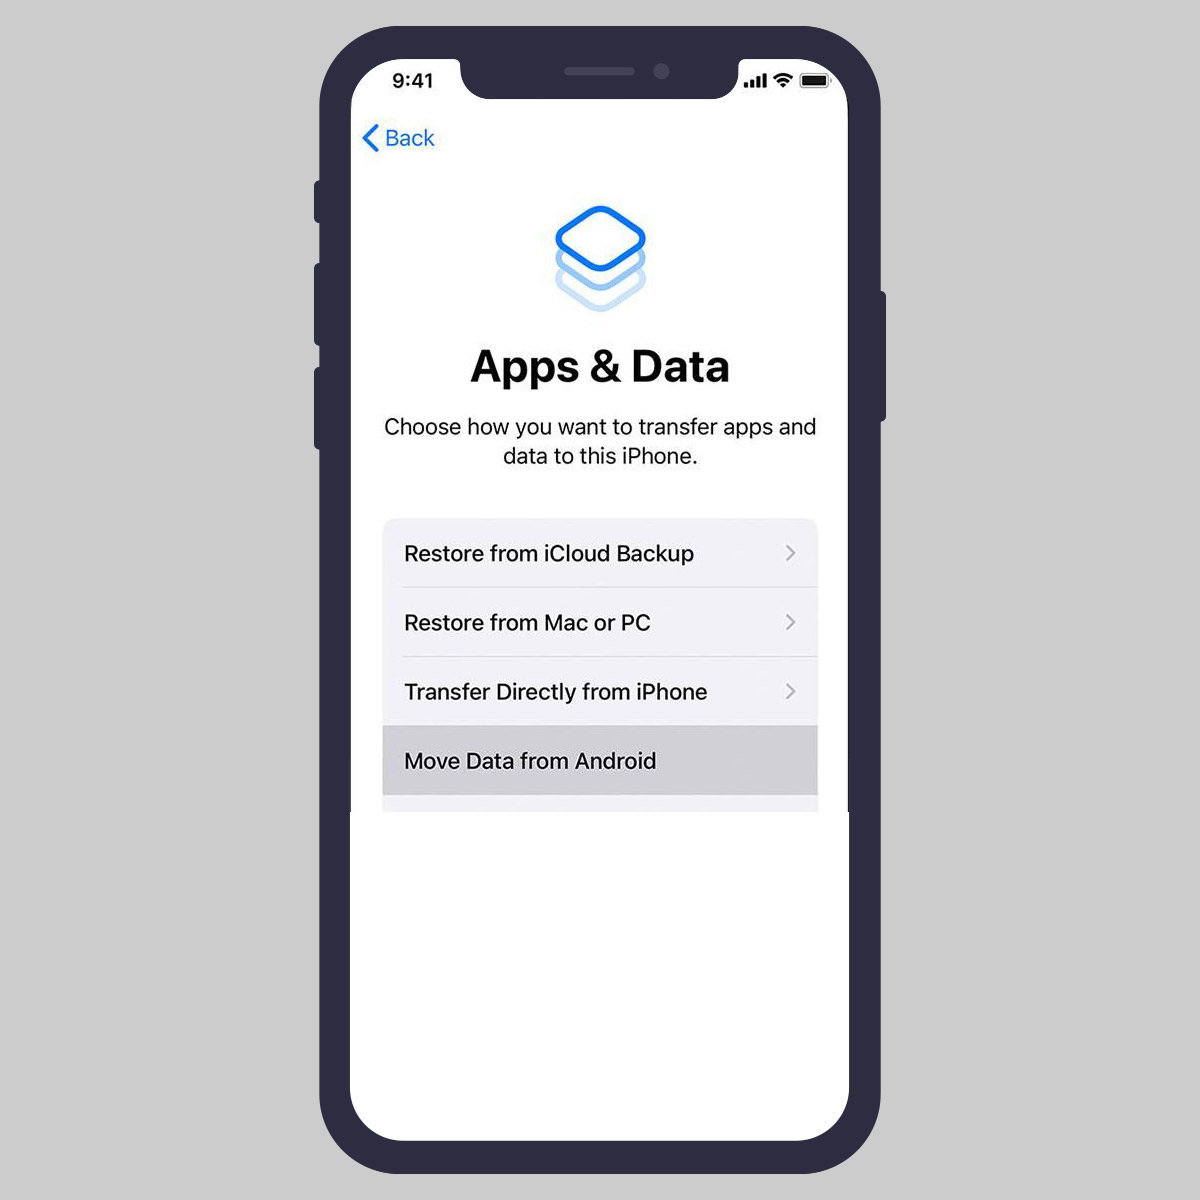 Move Data from Android while setting up iOS